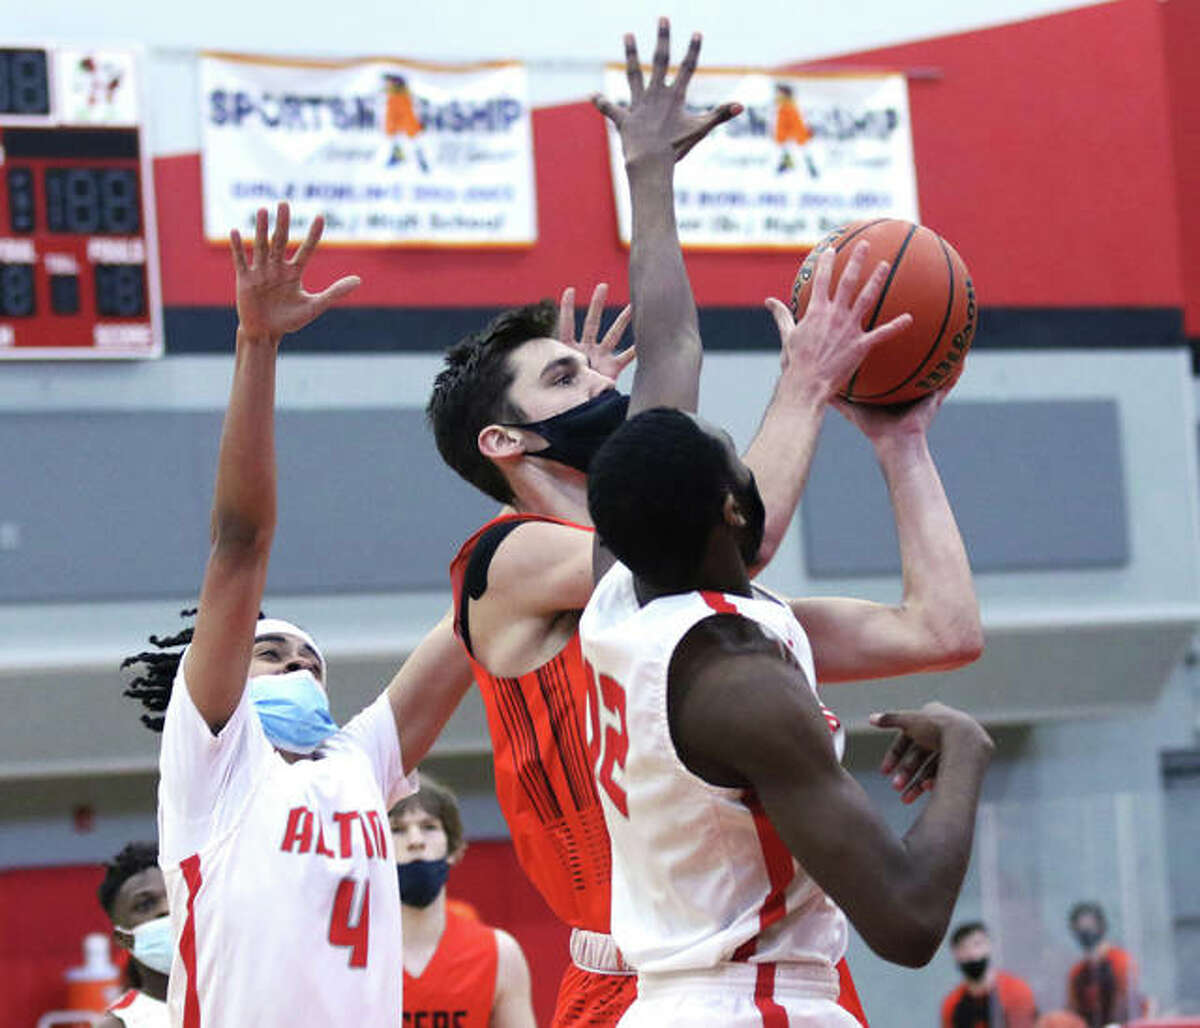 Edwardsville senior Brennan Weller (middle) puts up a shot between two Alton defenders during a SWC game last season at Alton High in Godfrey. Weller is the 2021 Telegraph Large-Schools Boys Basketball Player of the Year. He also won the award as a junior.